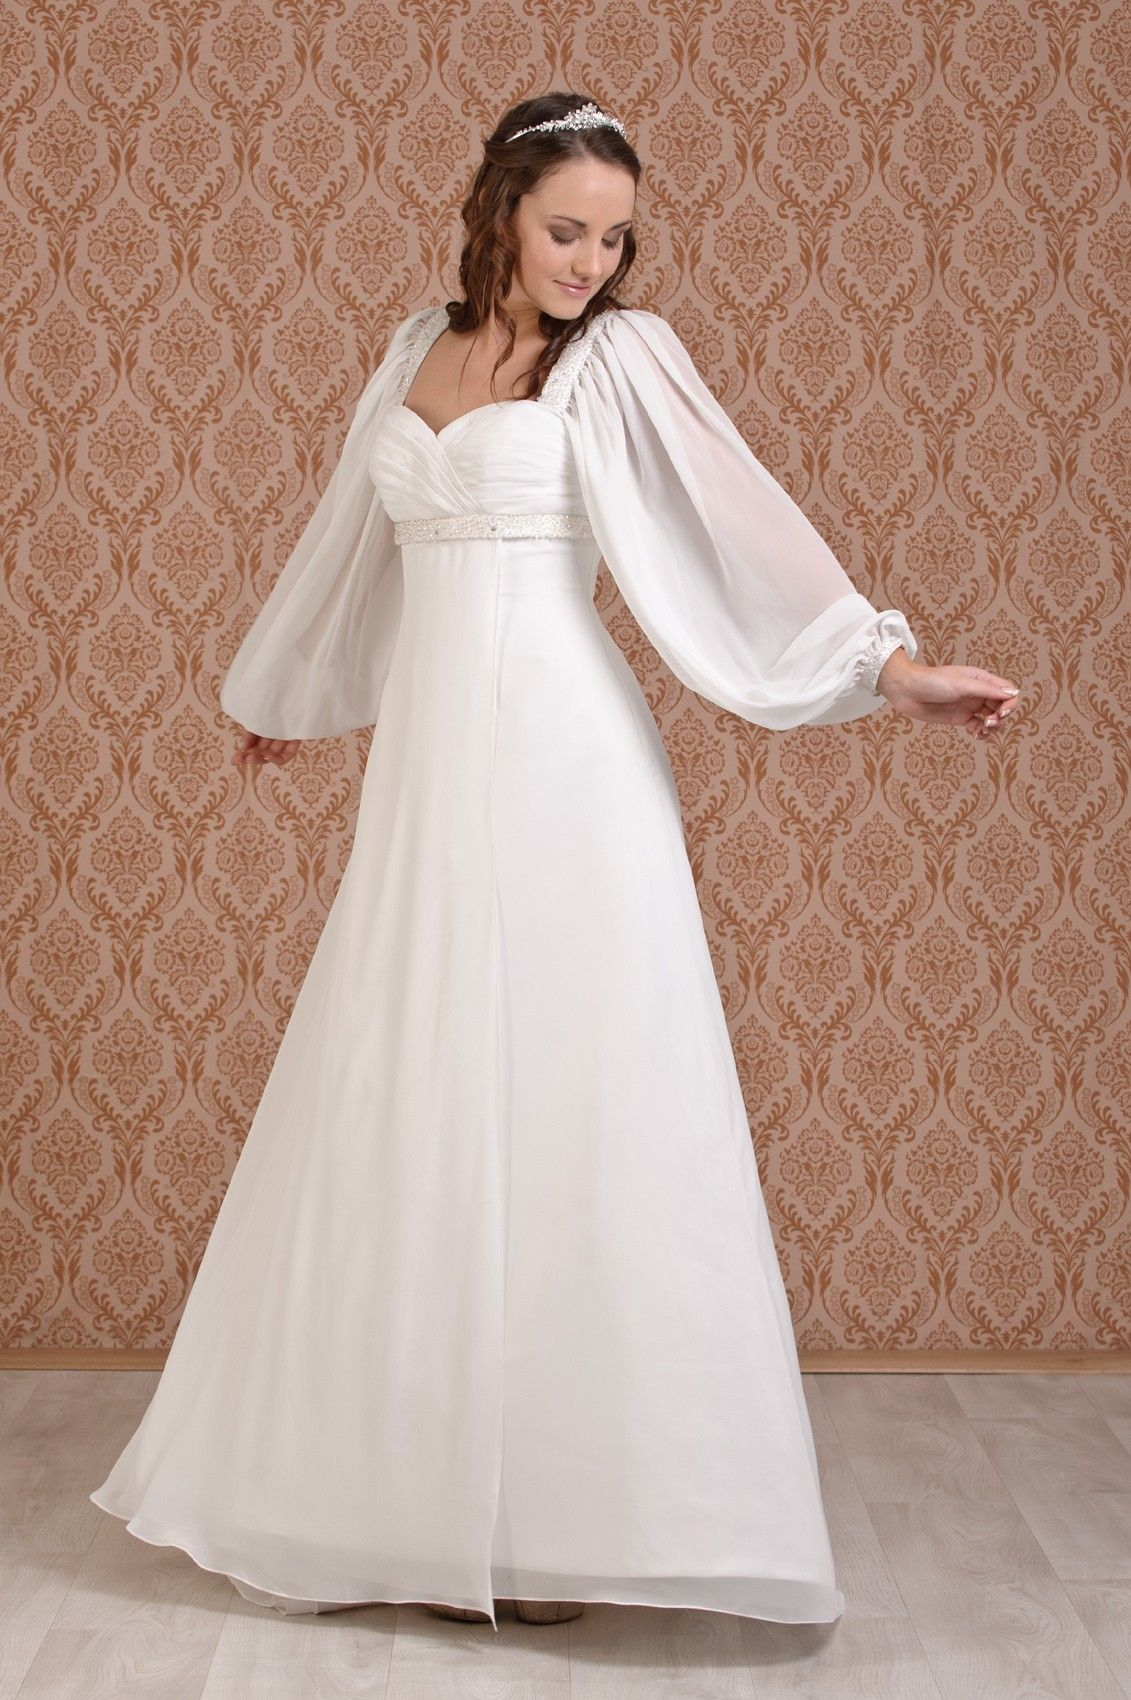 Wedding Celtic Wedding Dresses costs antoniette catenacci celtic bridal dress the goddess long sleeve wedding dresses to commemorate your special day